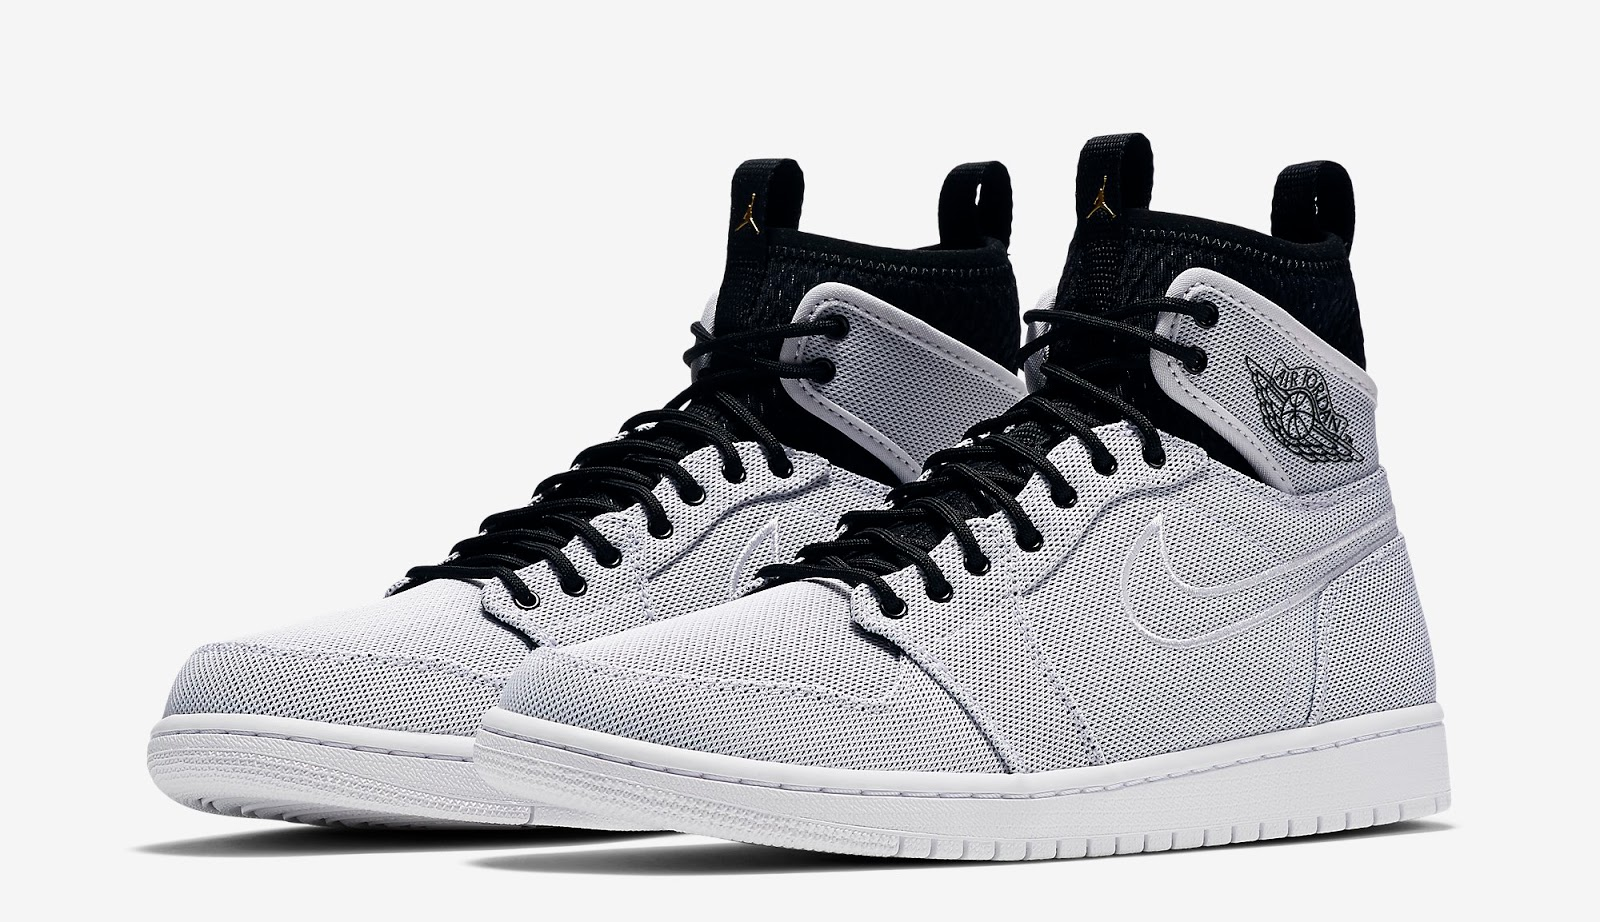 6969575ecd57 ajordanxi Your  1 Source For Sneaker Release Dates  Air Jordan 1 Retro  Ultra High White Metallic Gold Coin-Black-Pure Platinum Release Reminder